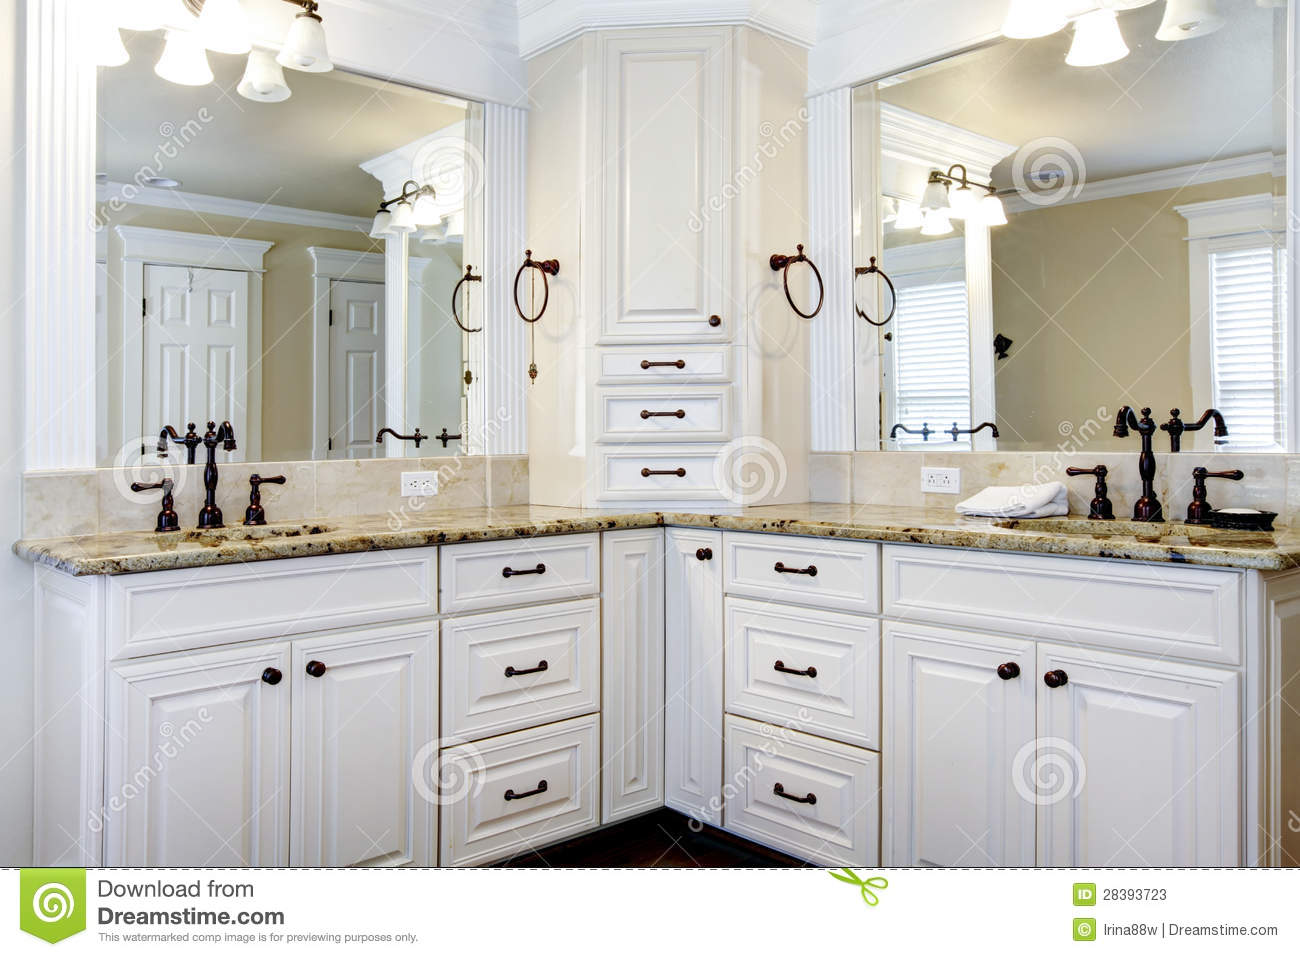 Nice apartment bathrooms - Stock Photos Luxury Large White Master Bathroom Cabinets With Double